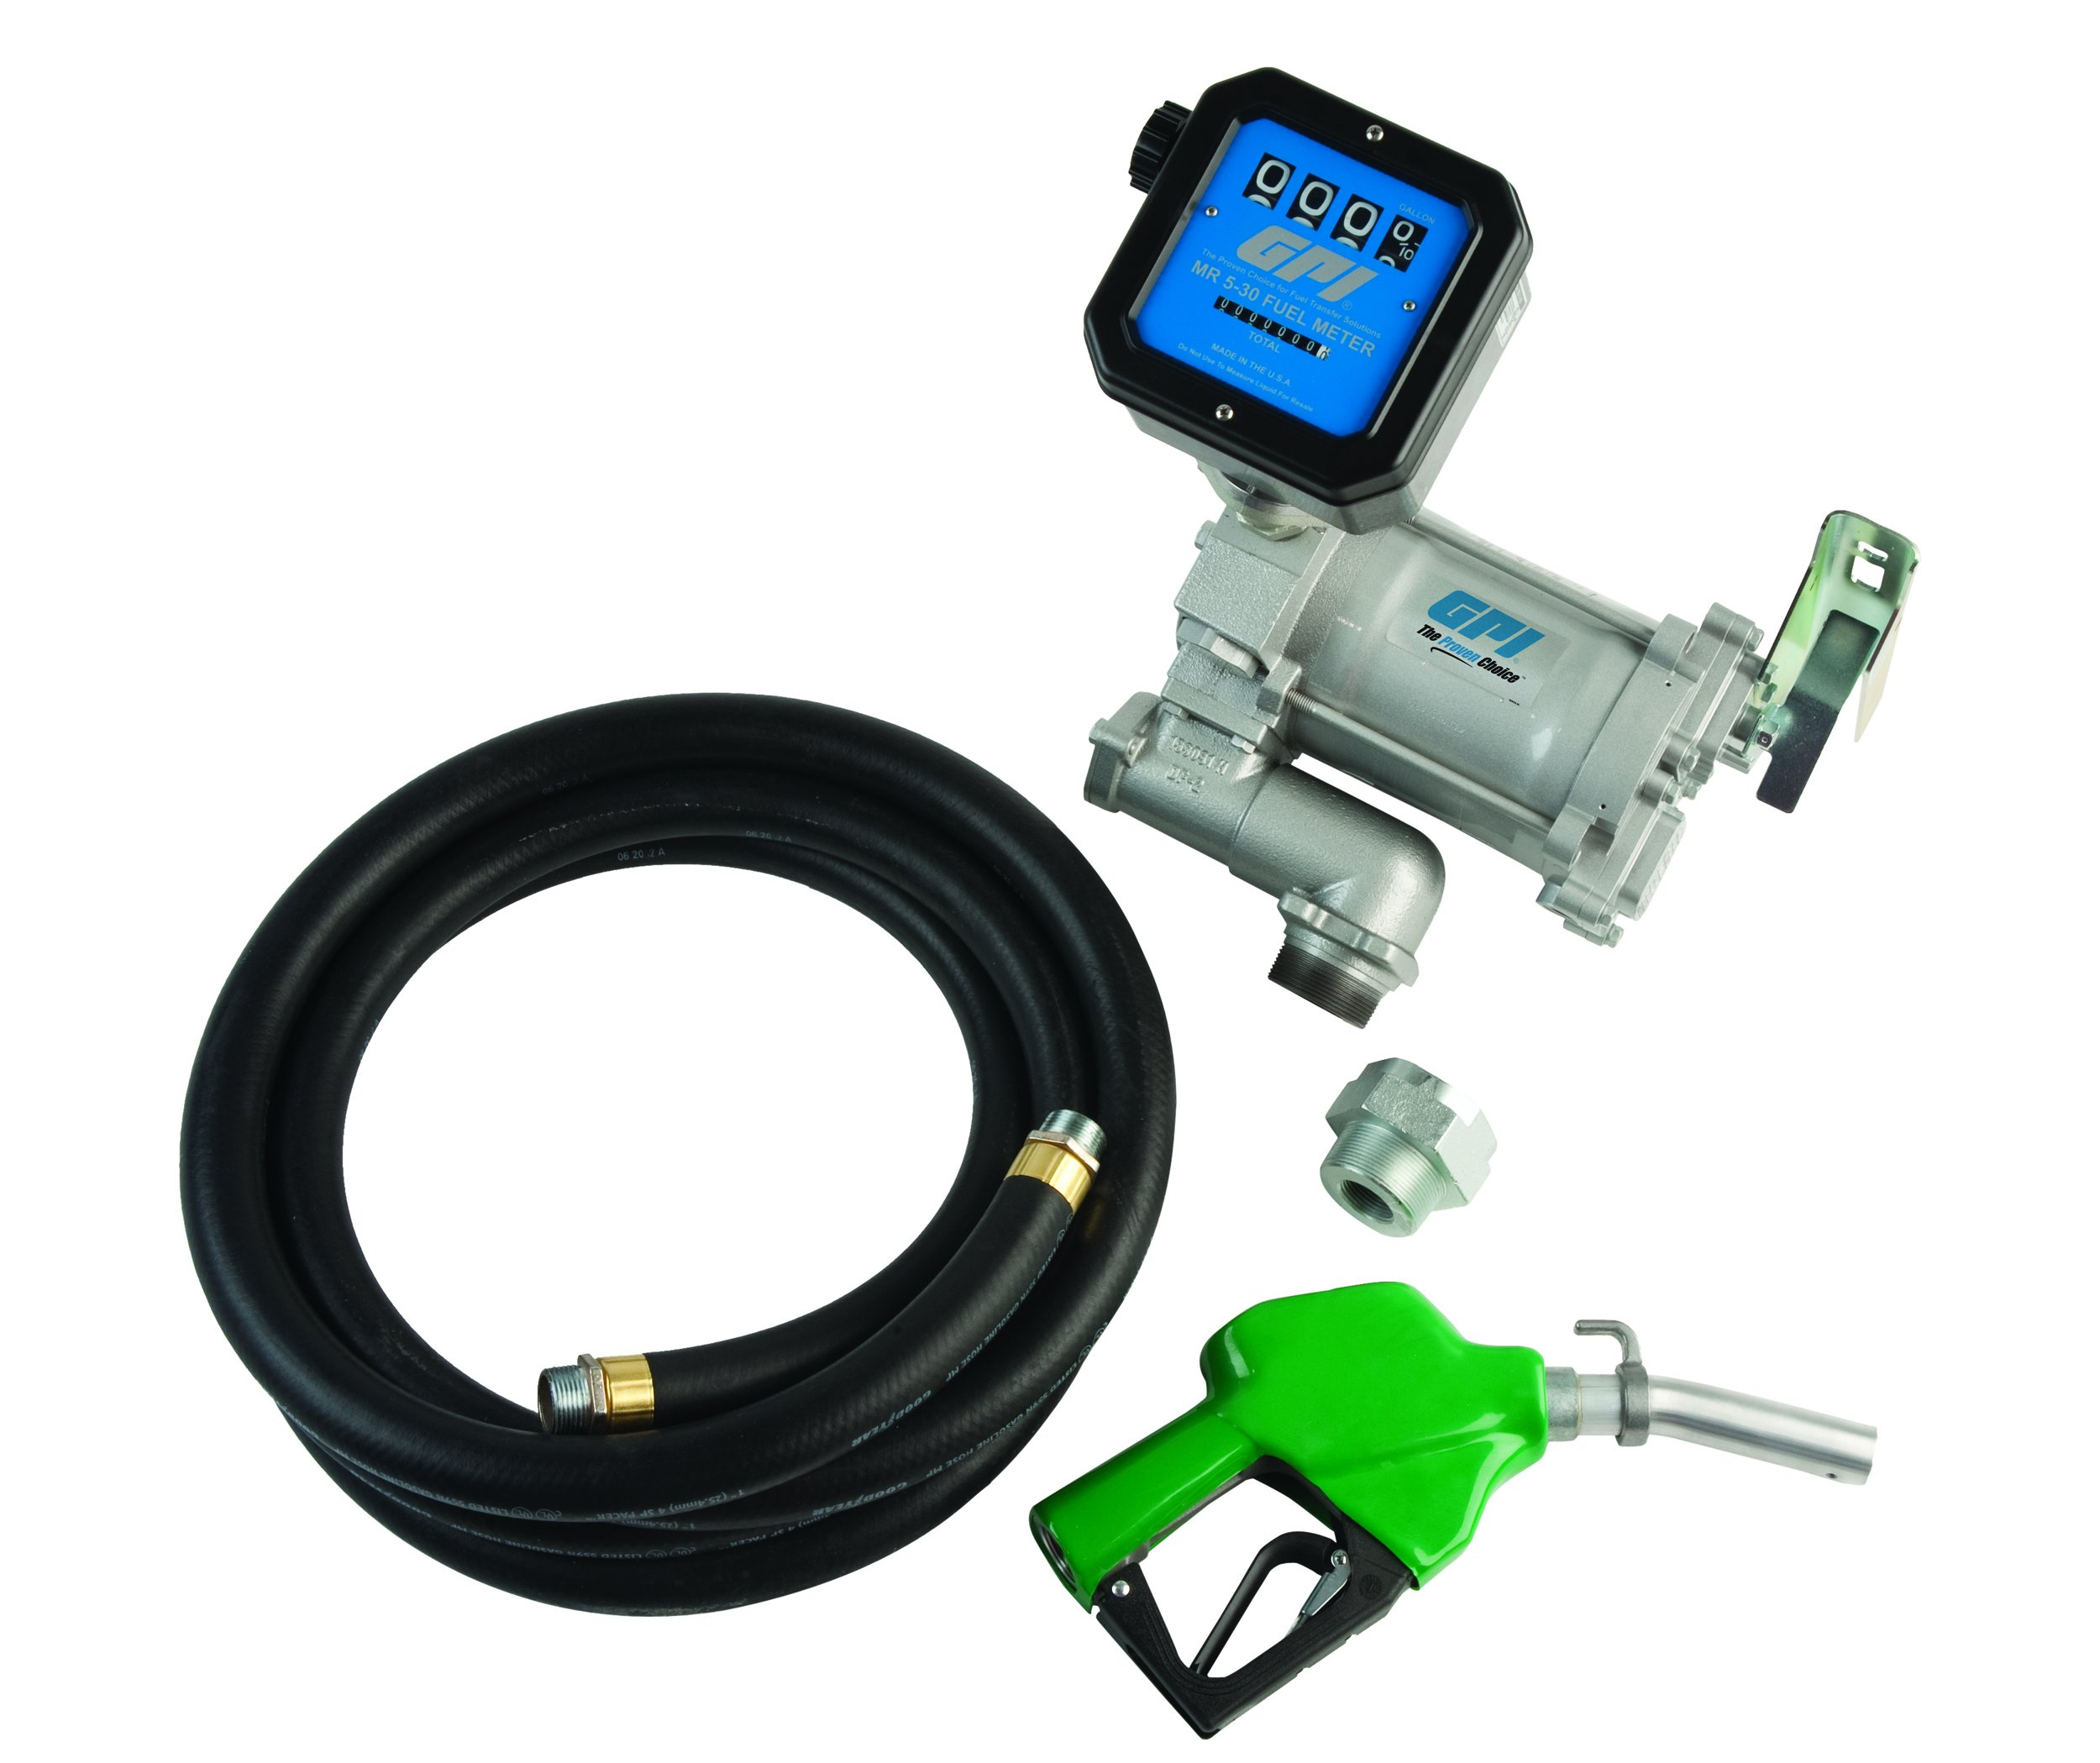 GPI 133600-35, M-3120-AD/MR530-G8N, Pre-Assembled High Flow Cast Iron Fuel Transfer Pump with Meter, 20 GPM, 115-VAC, 4-Digit Batch Display, 1-Inch NPT X 18-Foot Fuel Hose, Automatic Diesel Nozzle by GPI® The Proven Choice®